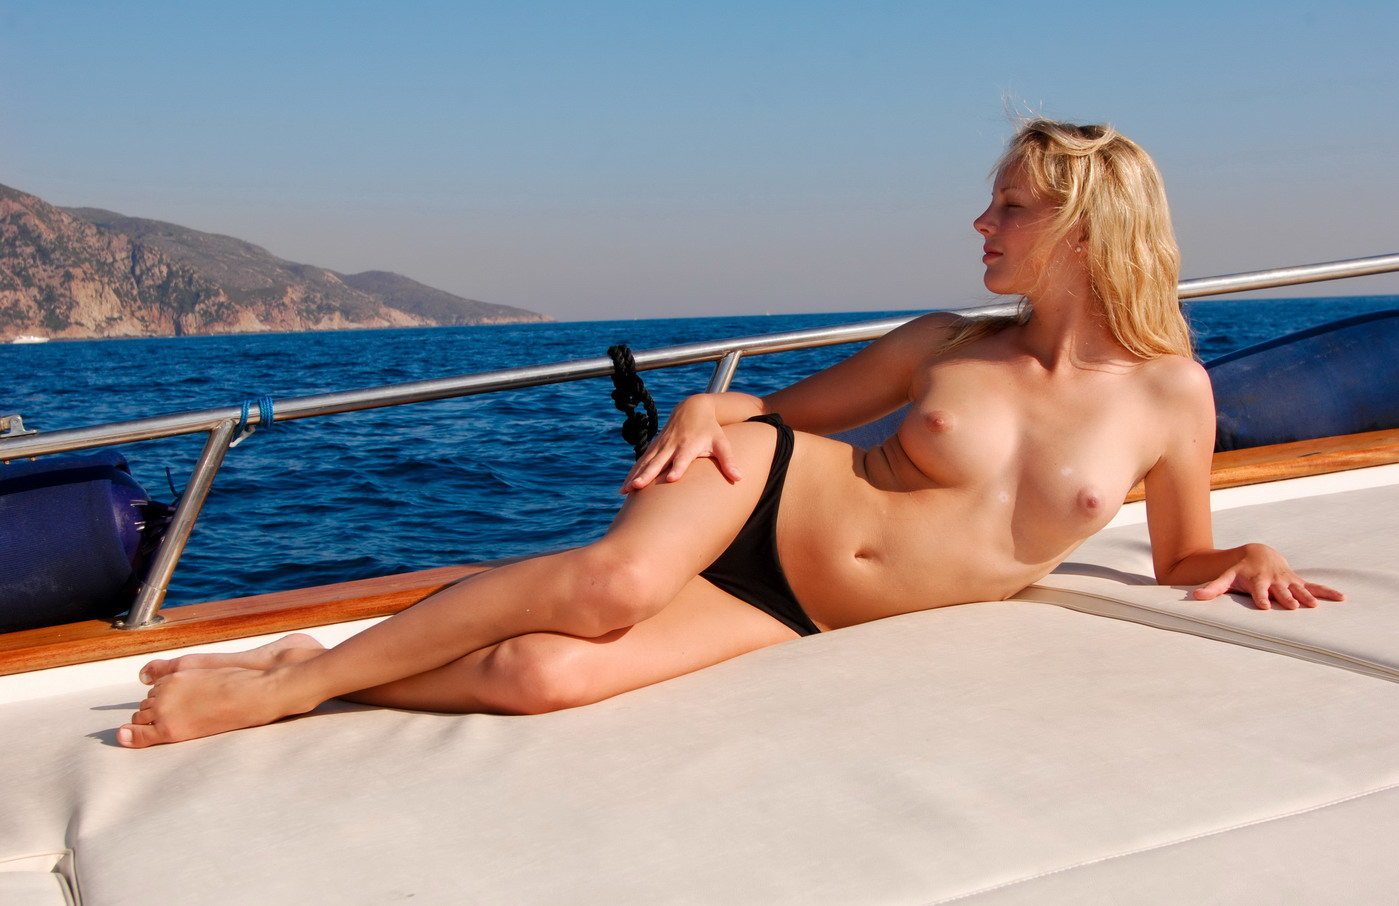 Sexy women boating naked look sex videos